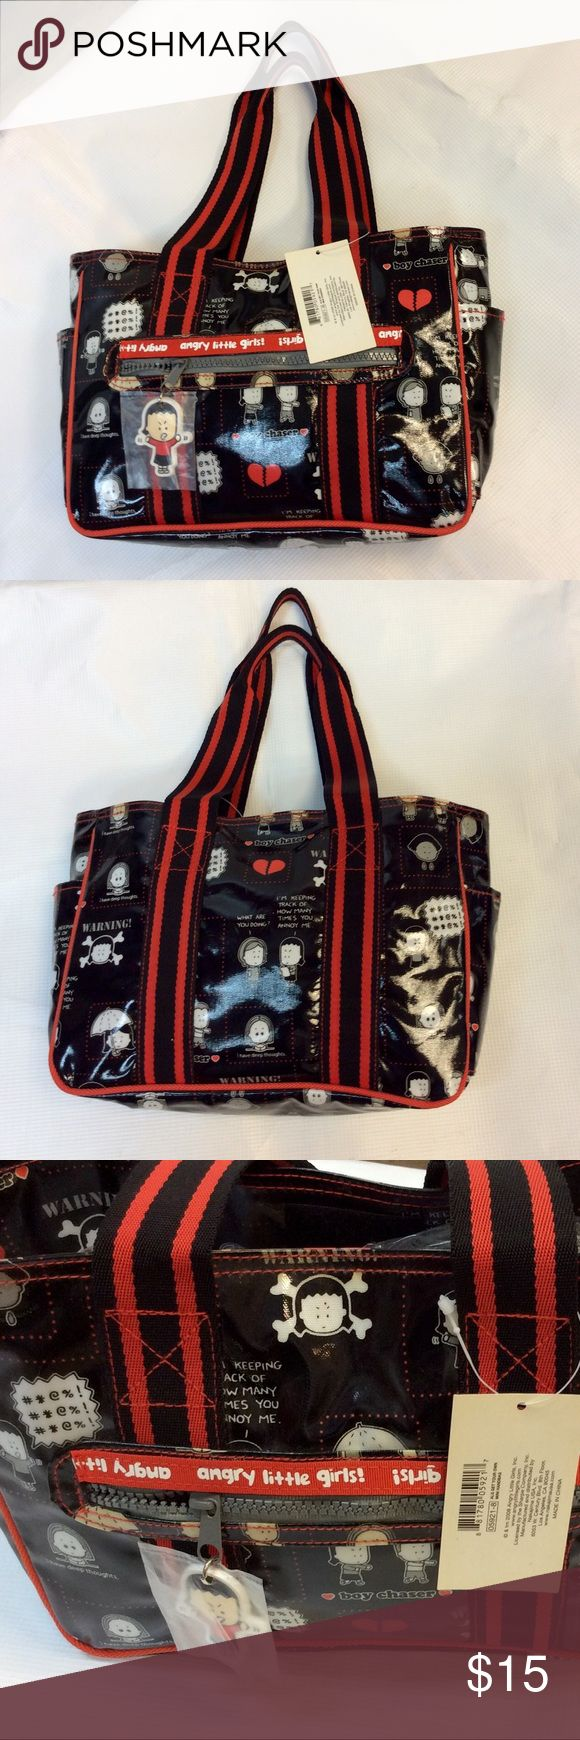 "🆕Angry Little Girls by Lela Lee Black Vinyl Bag NWT 2008 Angry Little Girls by Lela Lee Black Vinyl Bag  New With Tags  Measurements are: 11"" length, 8"" tall, 2.5"" deep w/ 8"" handle drop Bag has cartoon drawings from one of Lela Lee comic book Angry Little Girls  Bags Shoulder Bags"